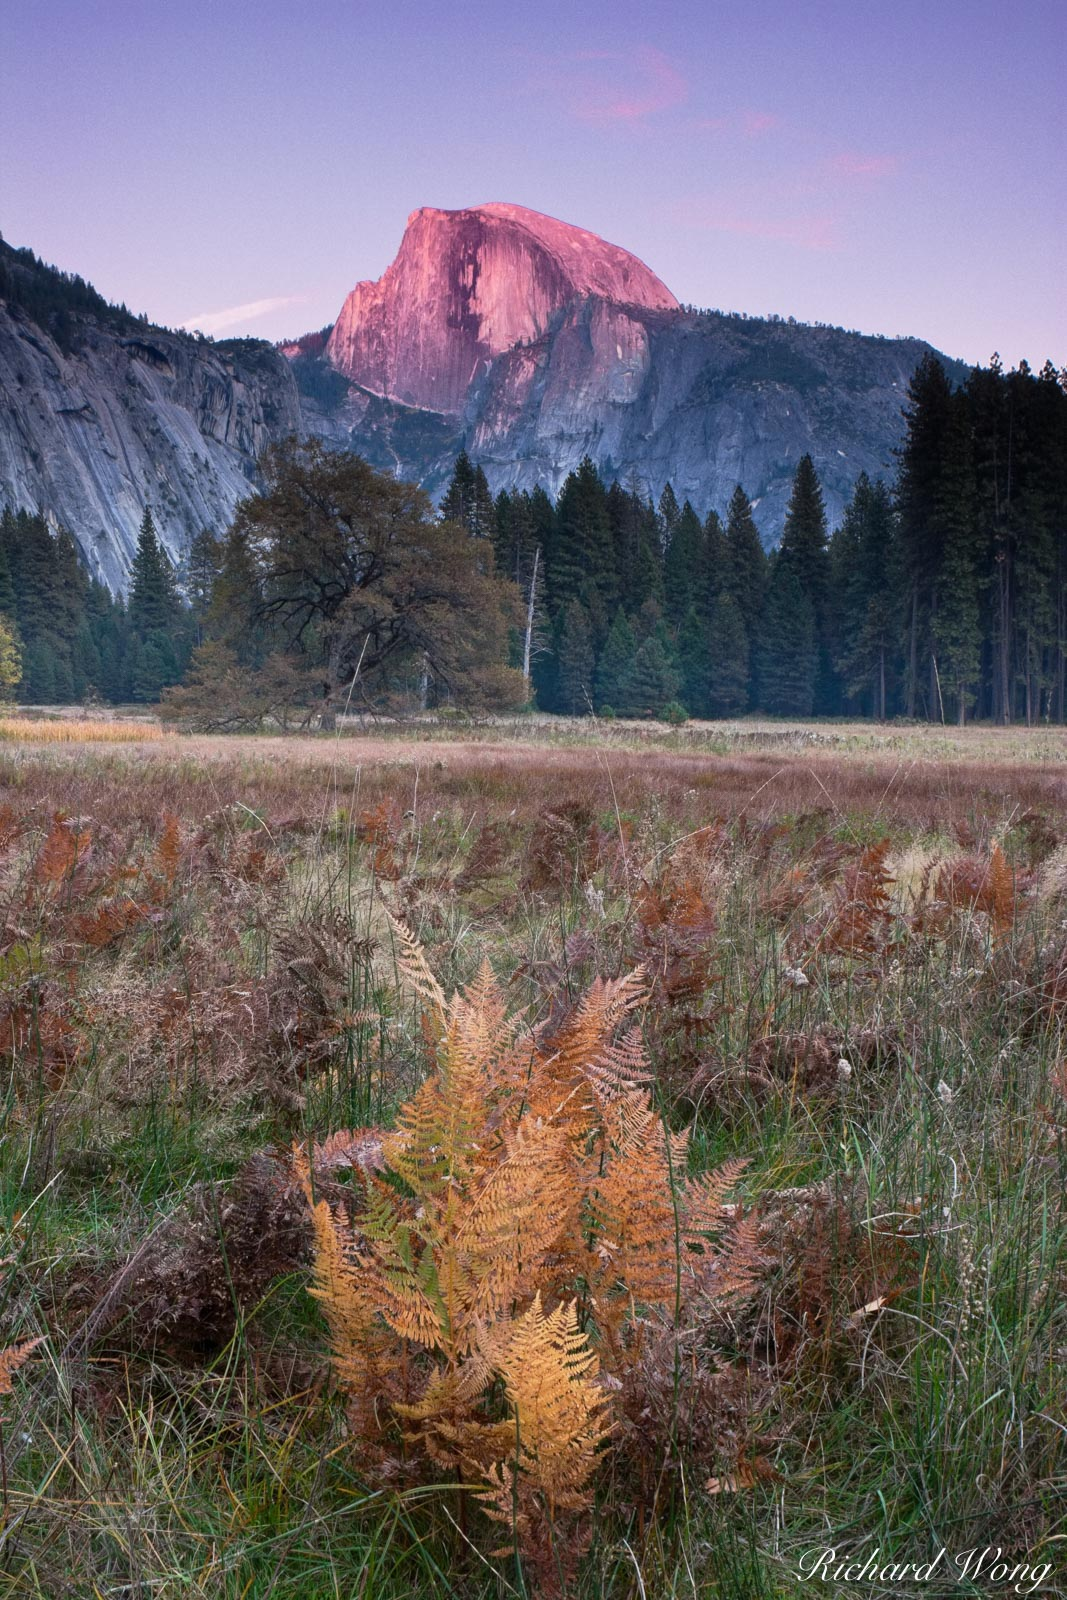 Sunset Alpenglow on Half Dome from Cook's Meadow During Fall Season, Yosemite National Park, California, photo, photo